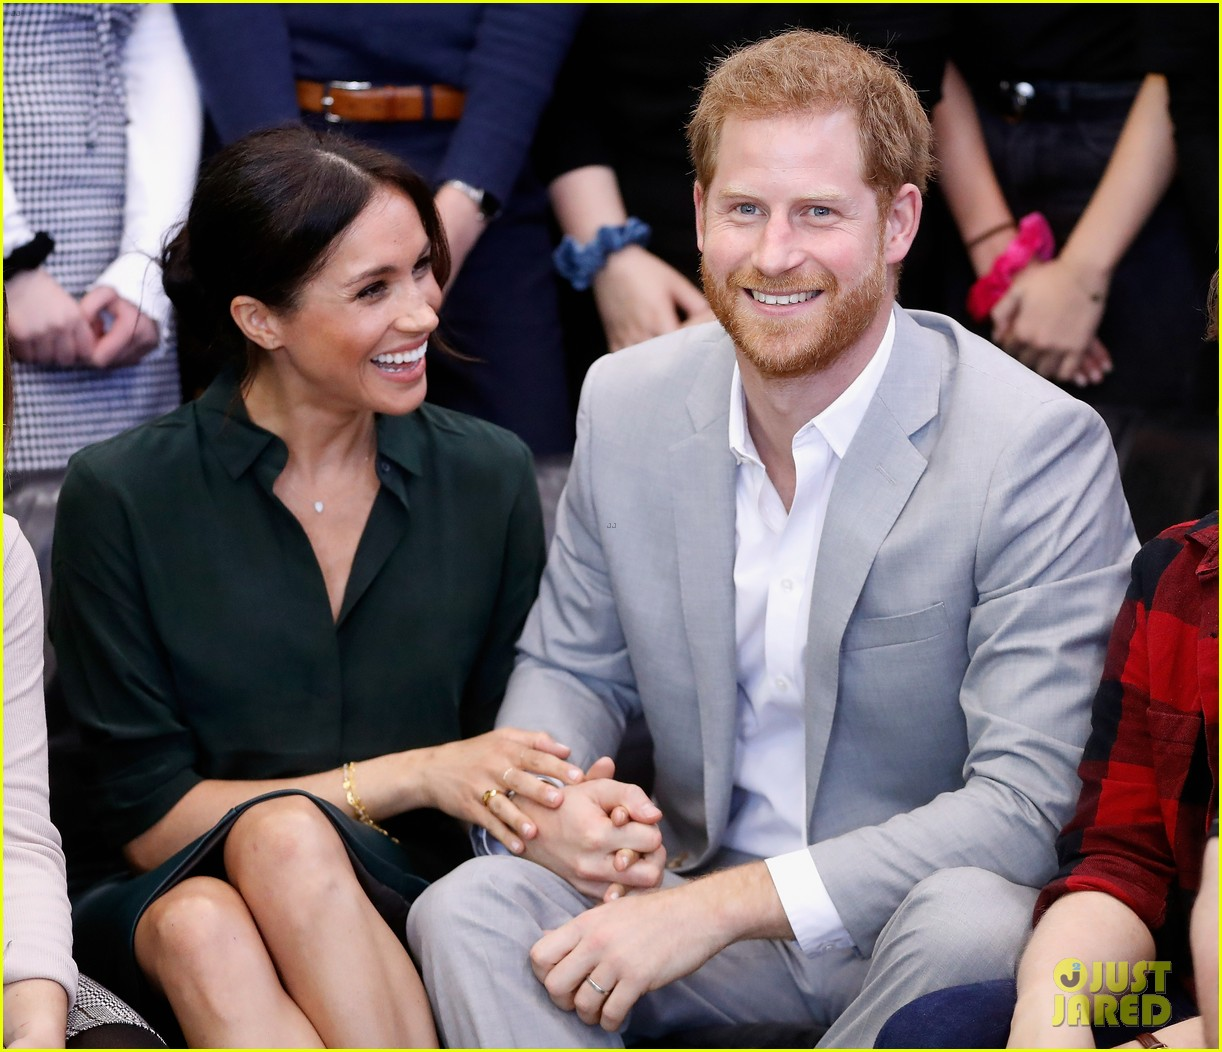 Meghan Markle Is Pregnant, Expecting Baby With Prince